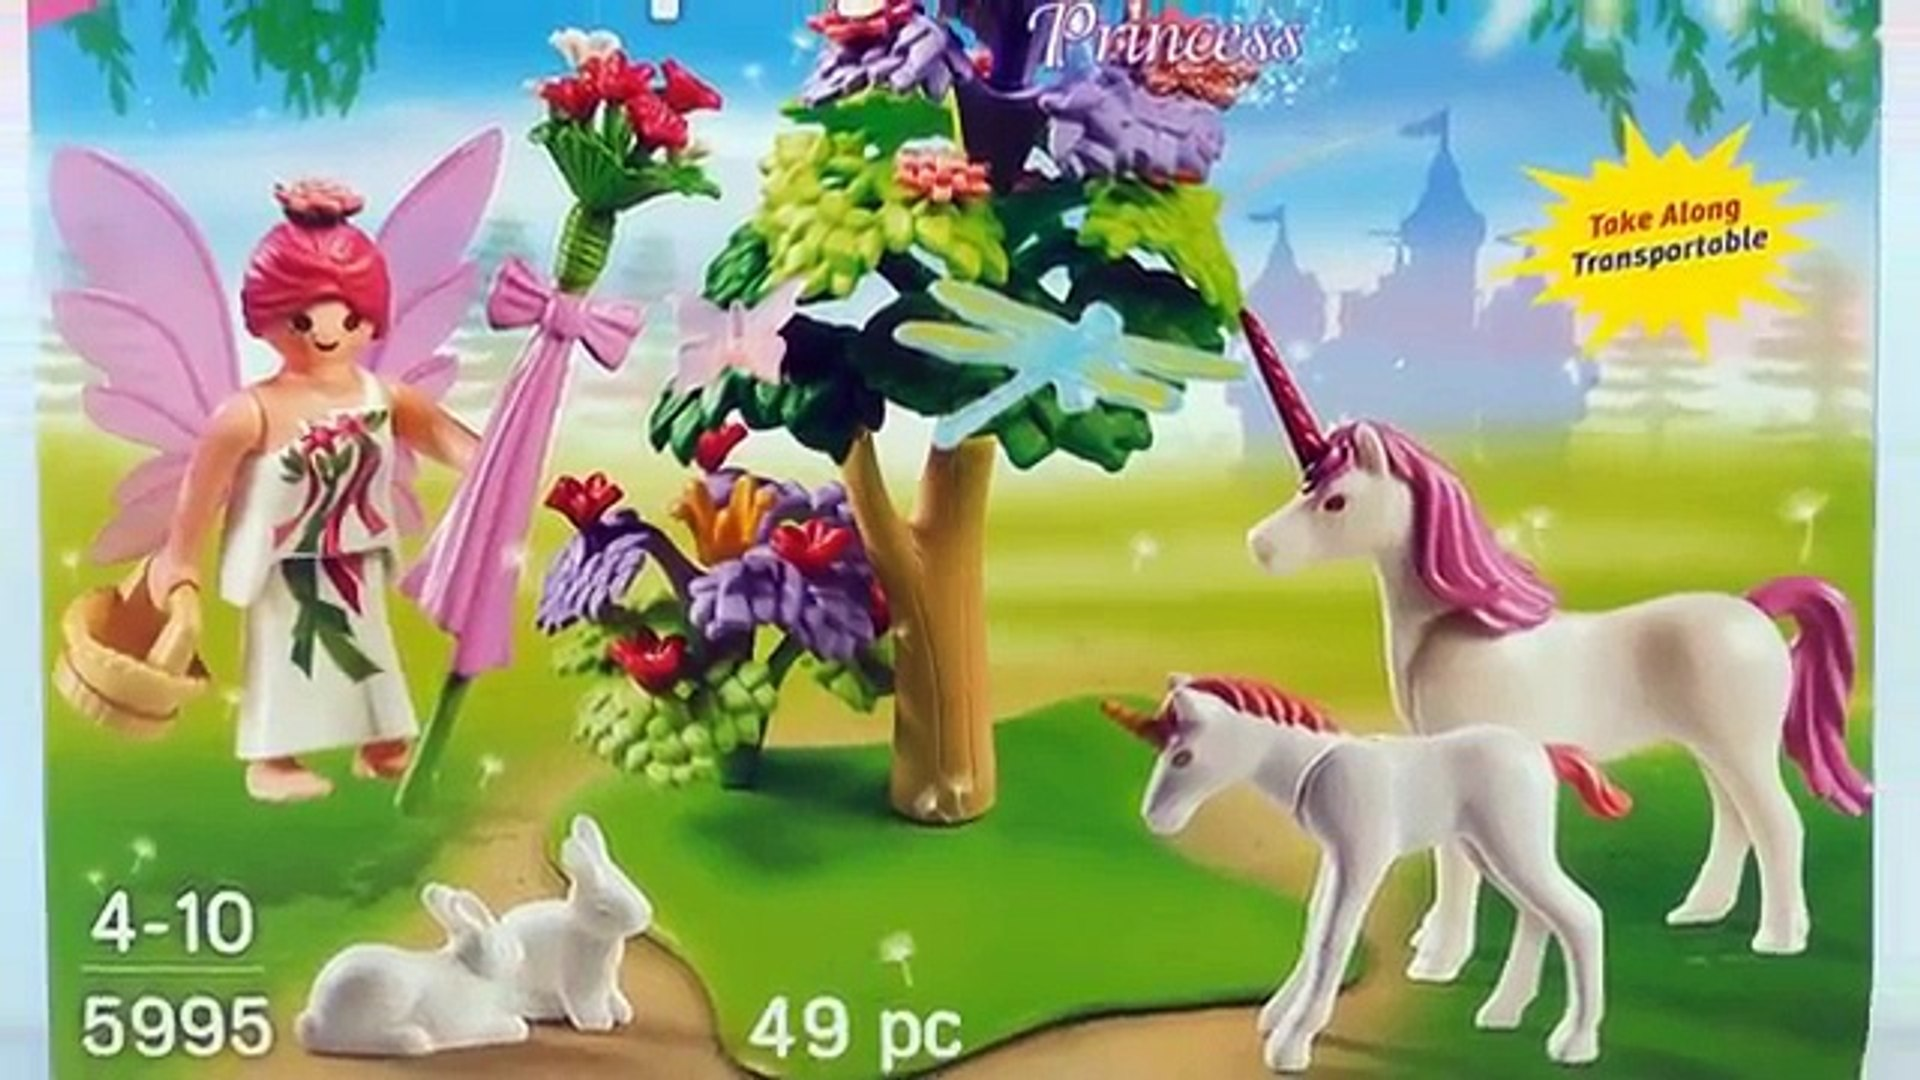 Playmobil Princess 5475 Magic Crystal Lake Playmobil Princess Prinzessin Fairy Garden With Unicorn Fantasy 5995 Pink Playset Toy Opening